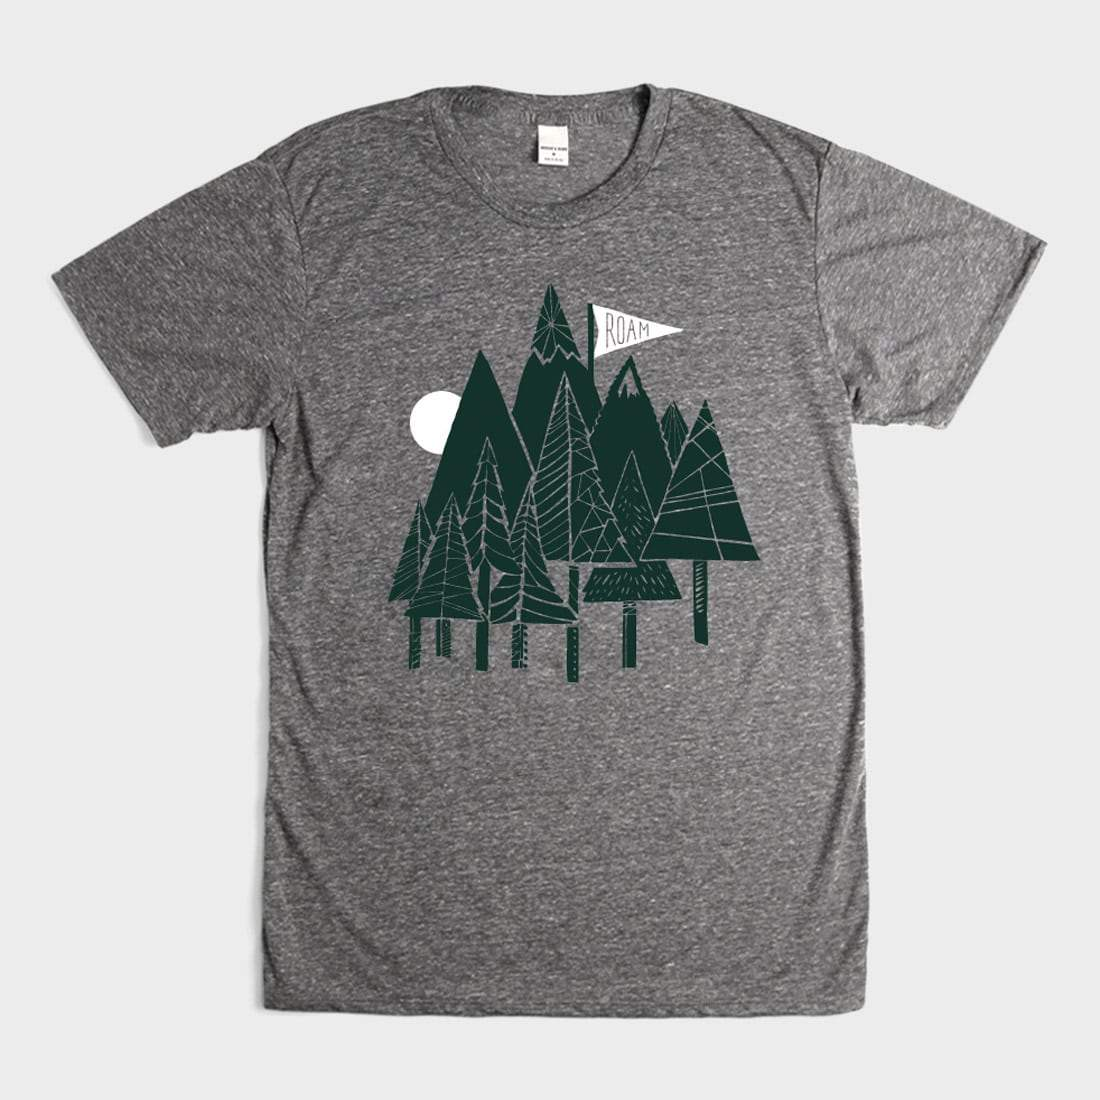 Bridge & Burn Roam Forest T-Shirt Dark Heather